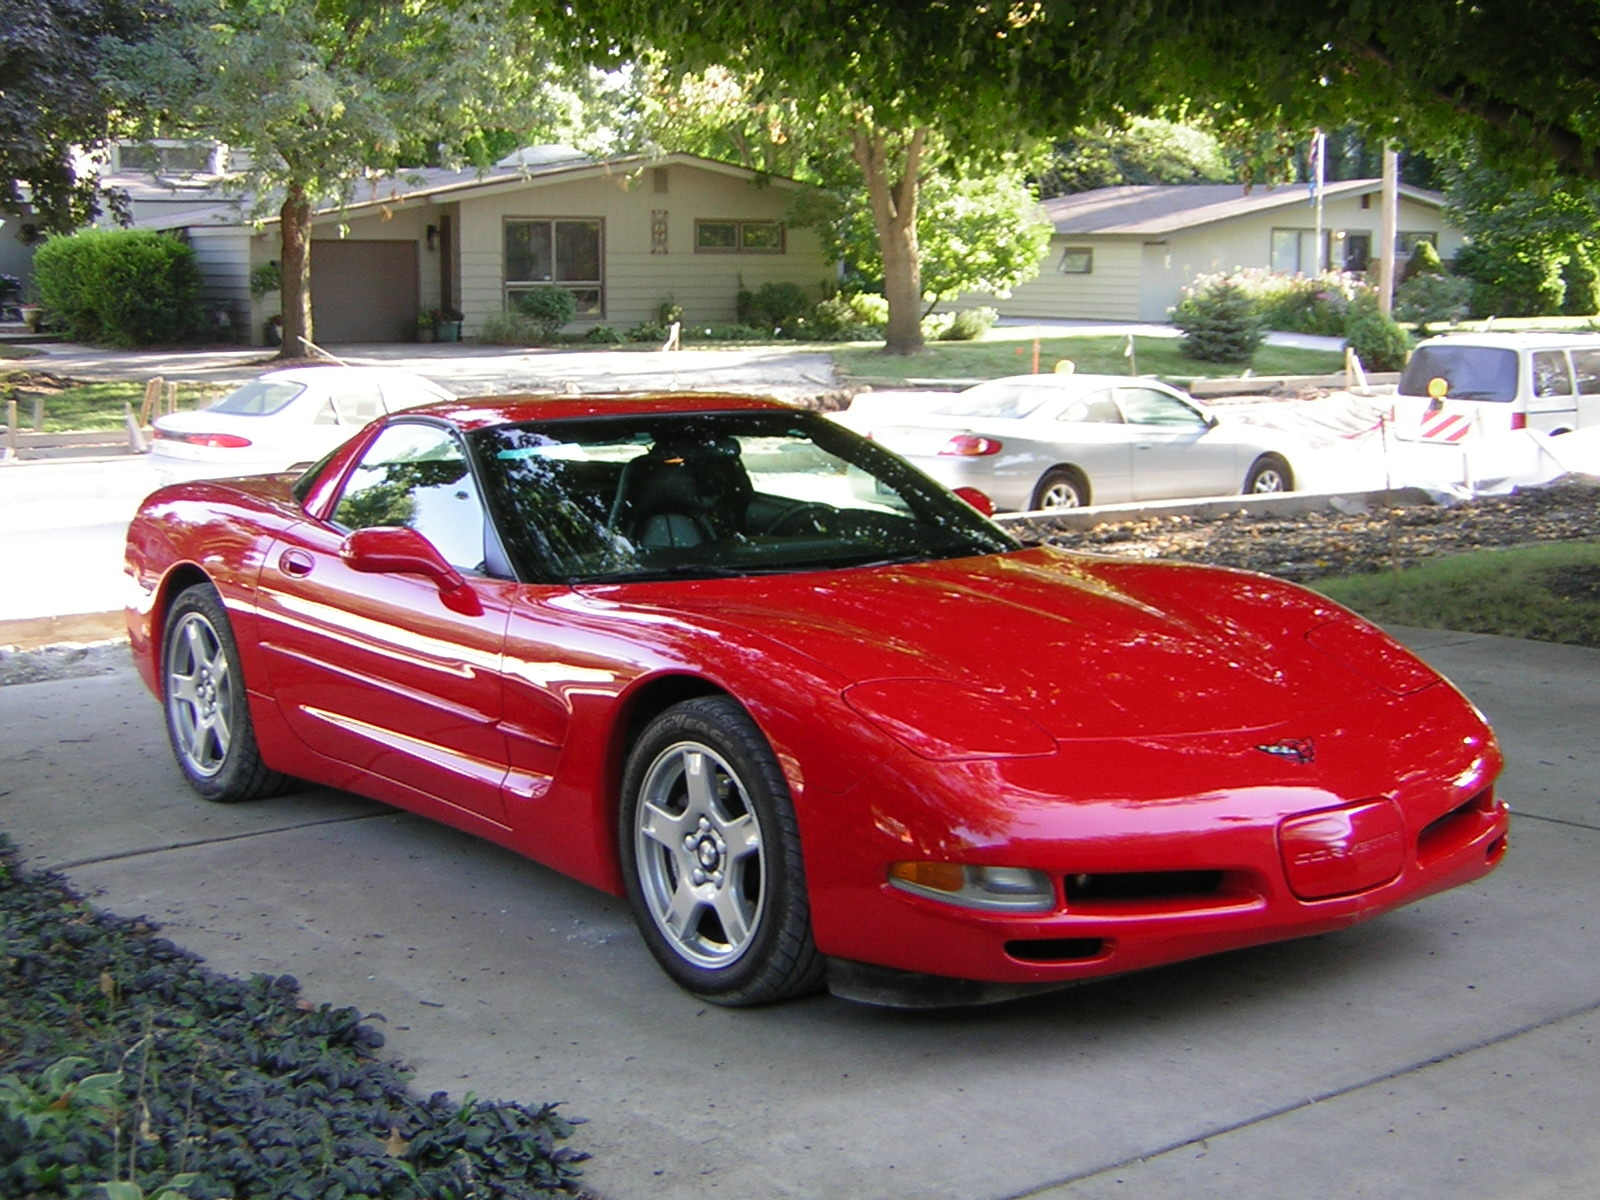 Picture of 1998 chevrolet corvette exterior gallery_worthy